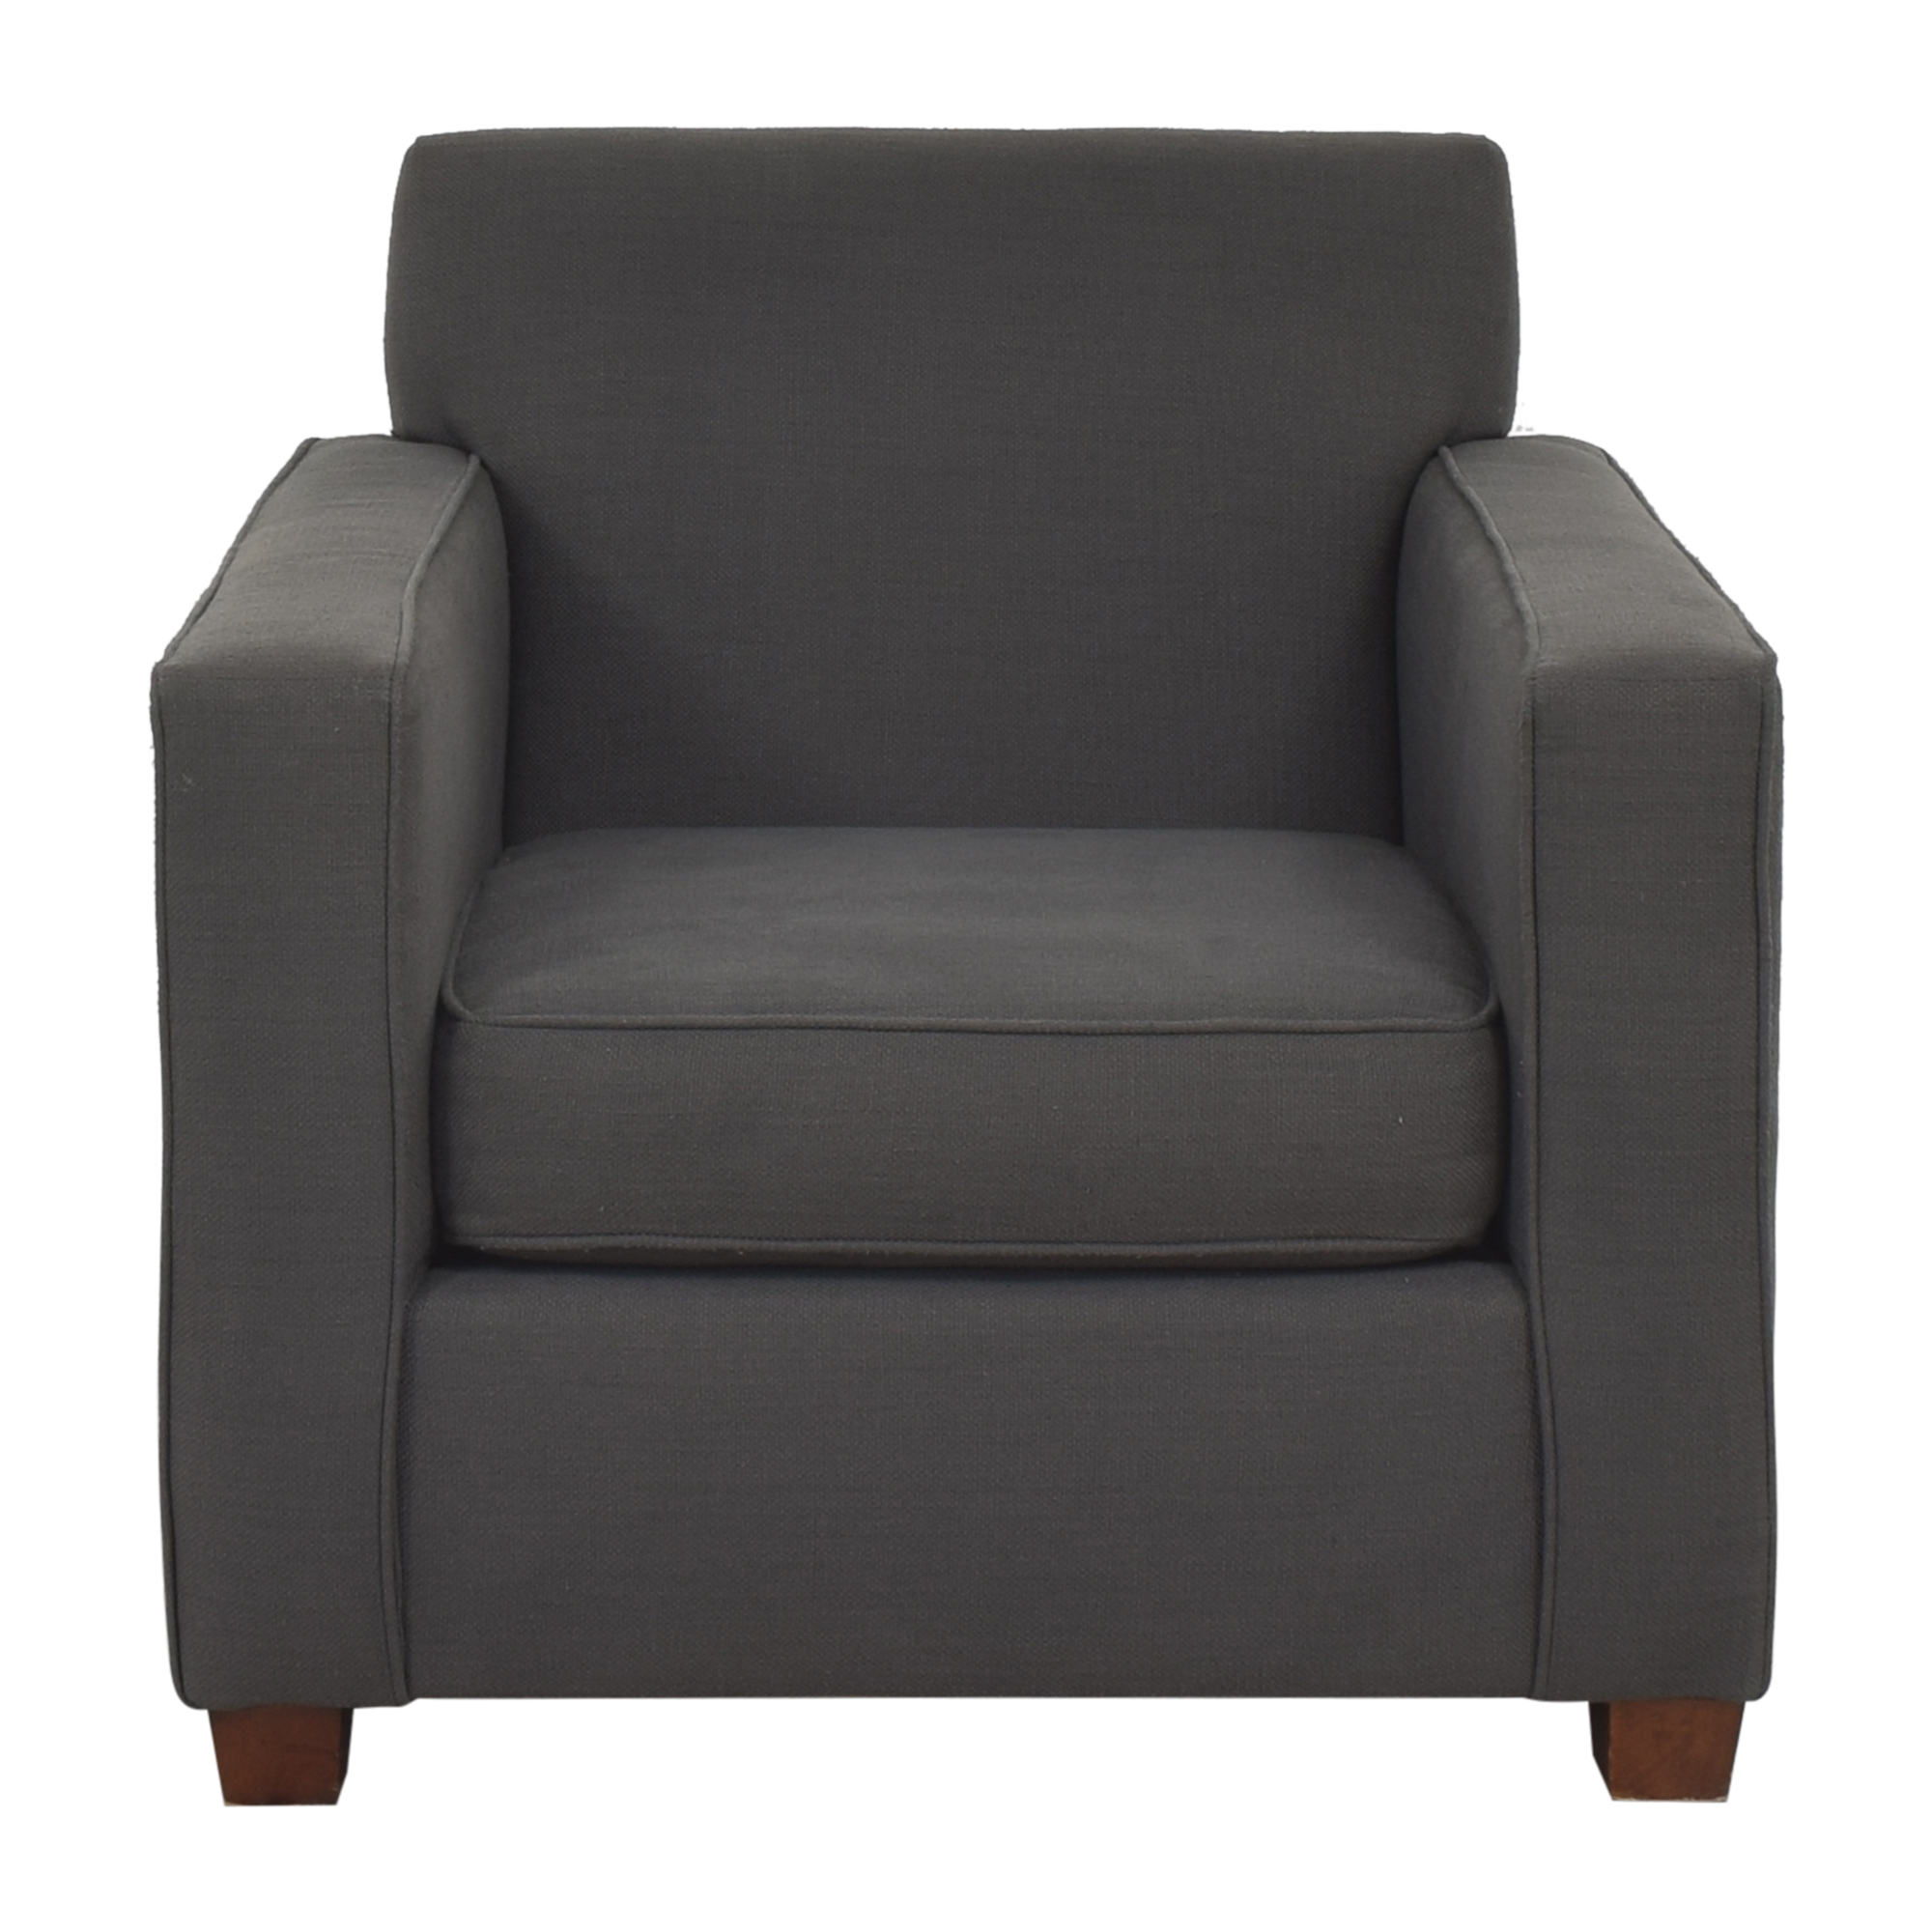 West Elm West Elm Henry Chair and Ottoman dimensions